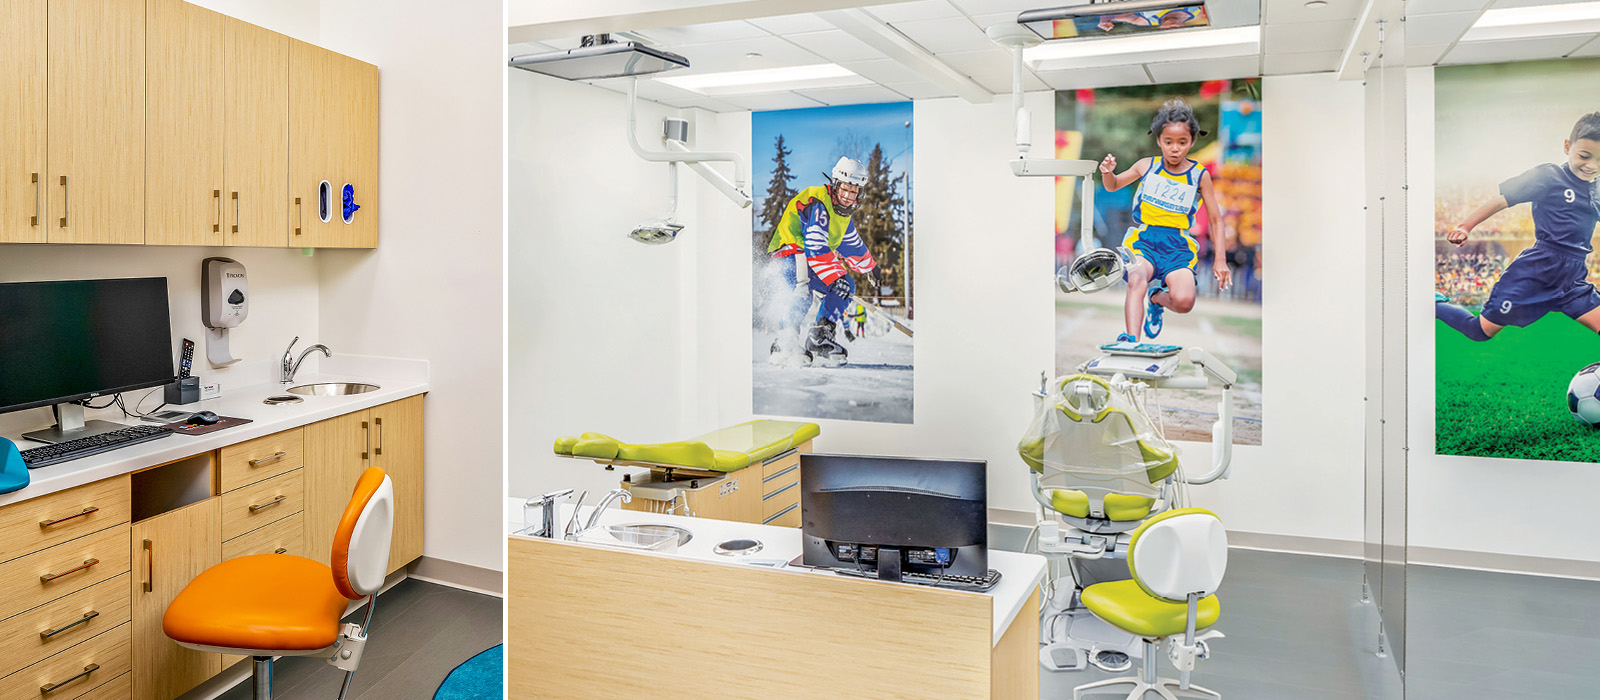 Sprout Dental sports-themed treatment area